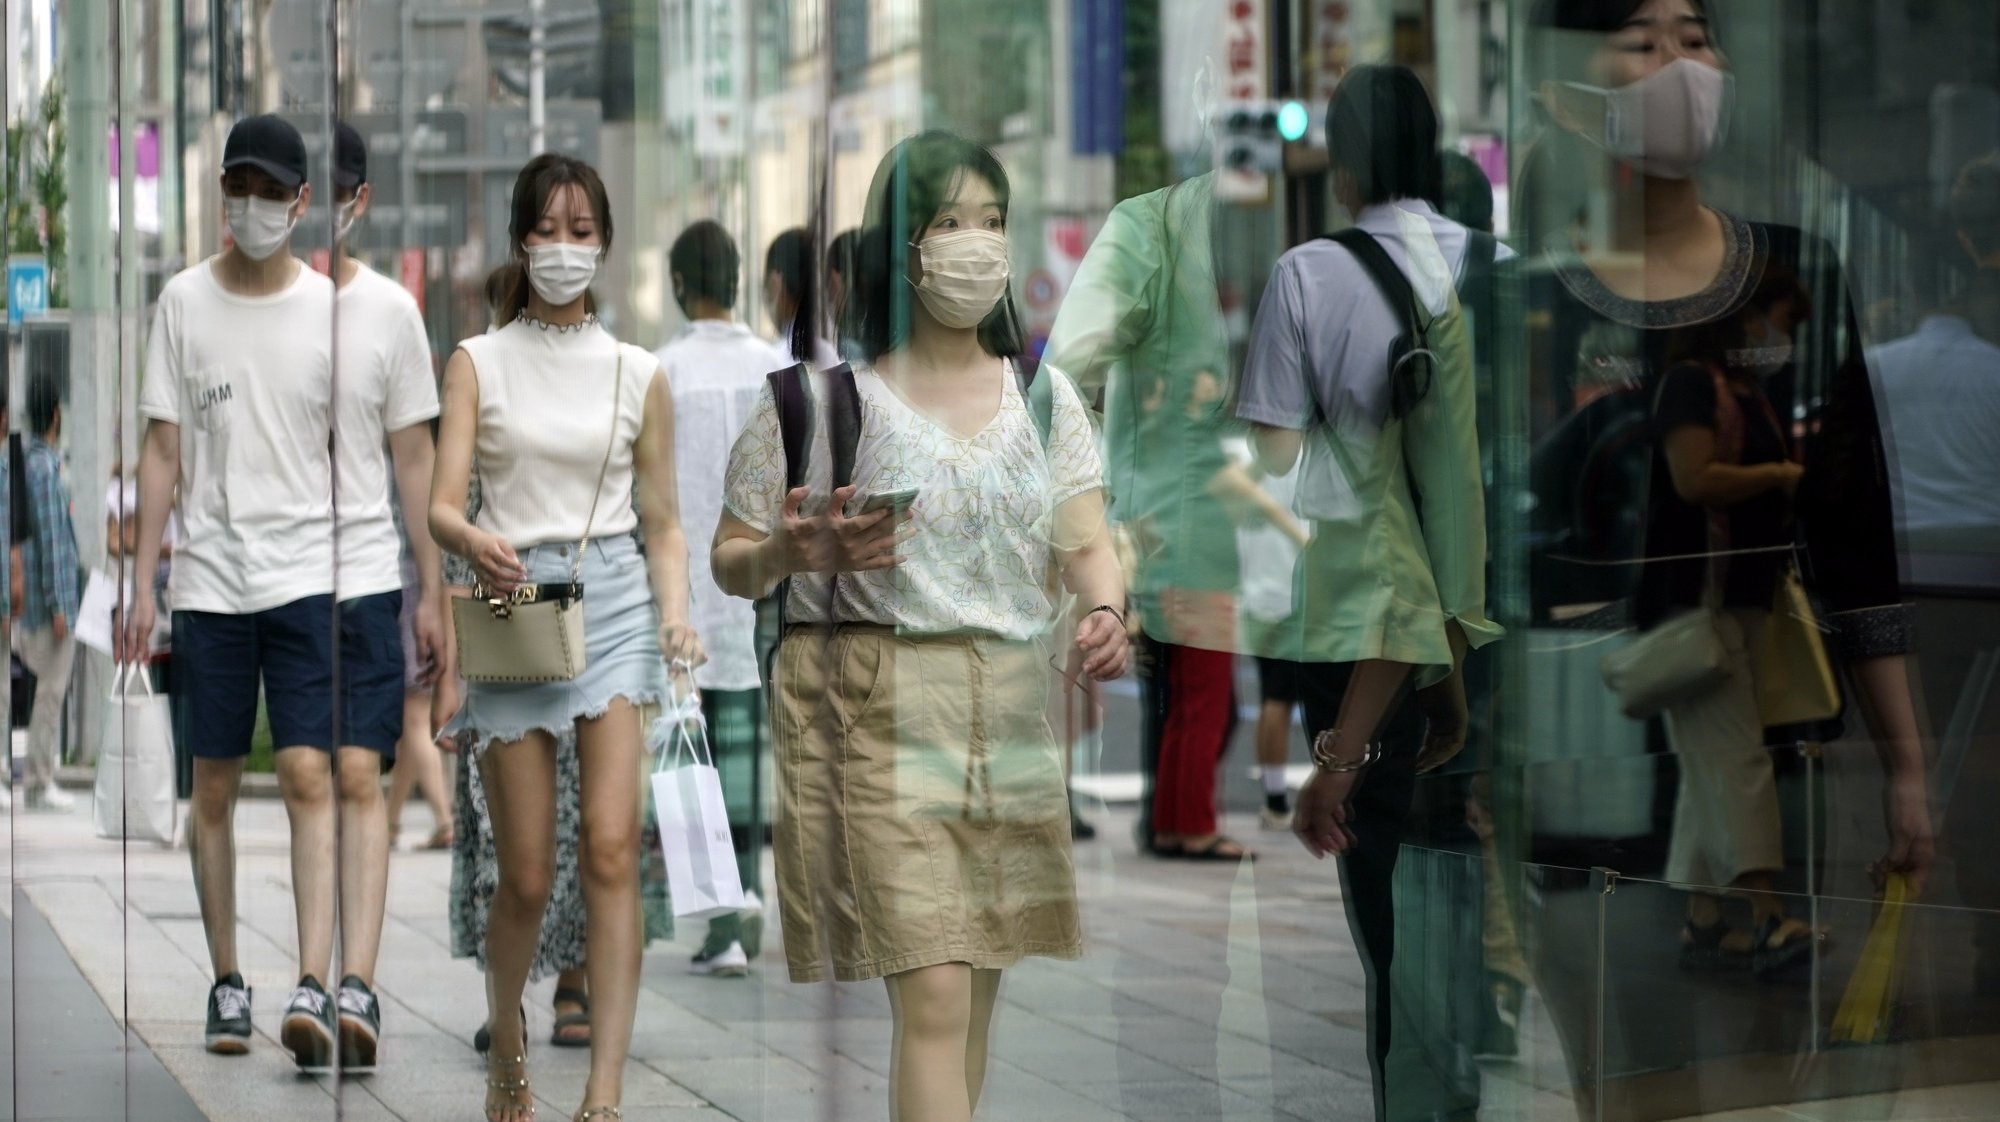 epa09376457 Passersby wearing face masks are reflected in a display window at Ginza shopping district in Tokyo, Japan, 29 July 2021. Japan's total COVID-19 new cases crossed the 10,000 mark for the first time as Tokyo records a surge of infections.  EPA/FRANCK ROBICHON